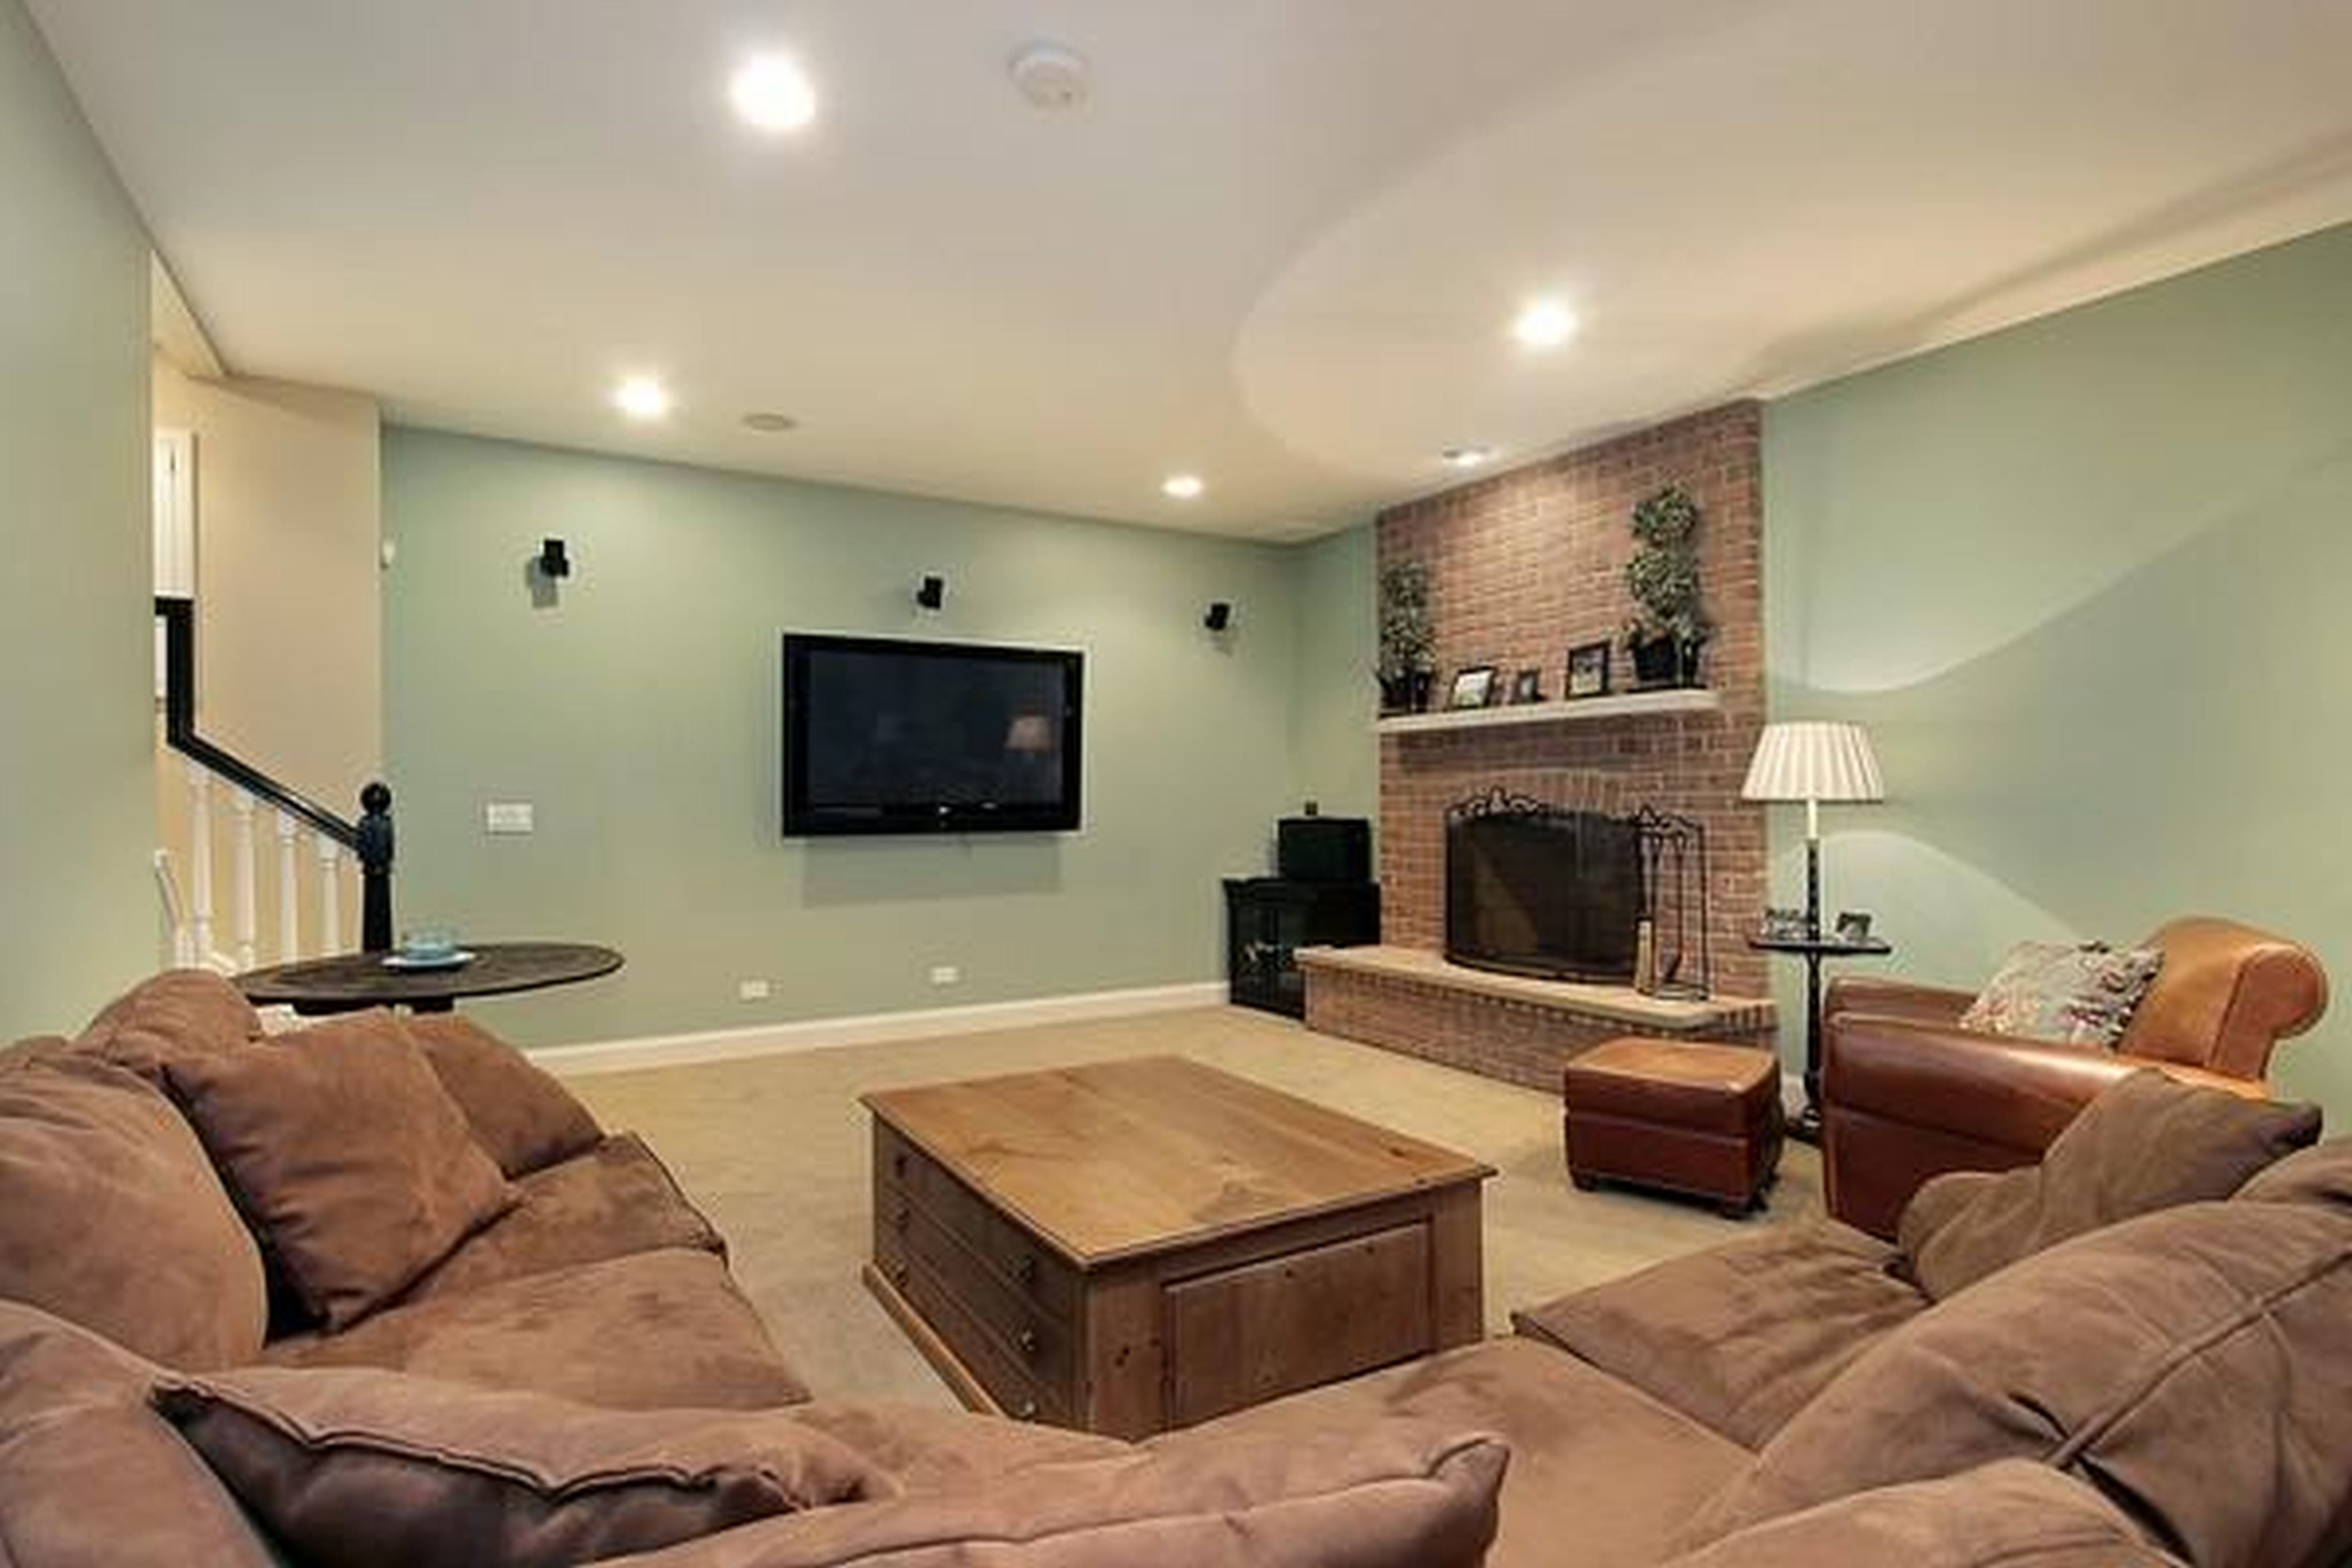 ideas for basement wall colors in 2020 with images on basement wall paint colors id=41838